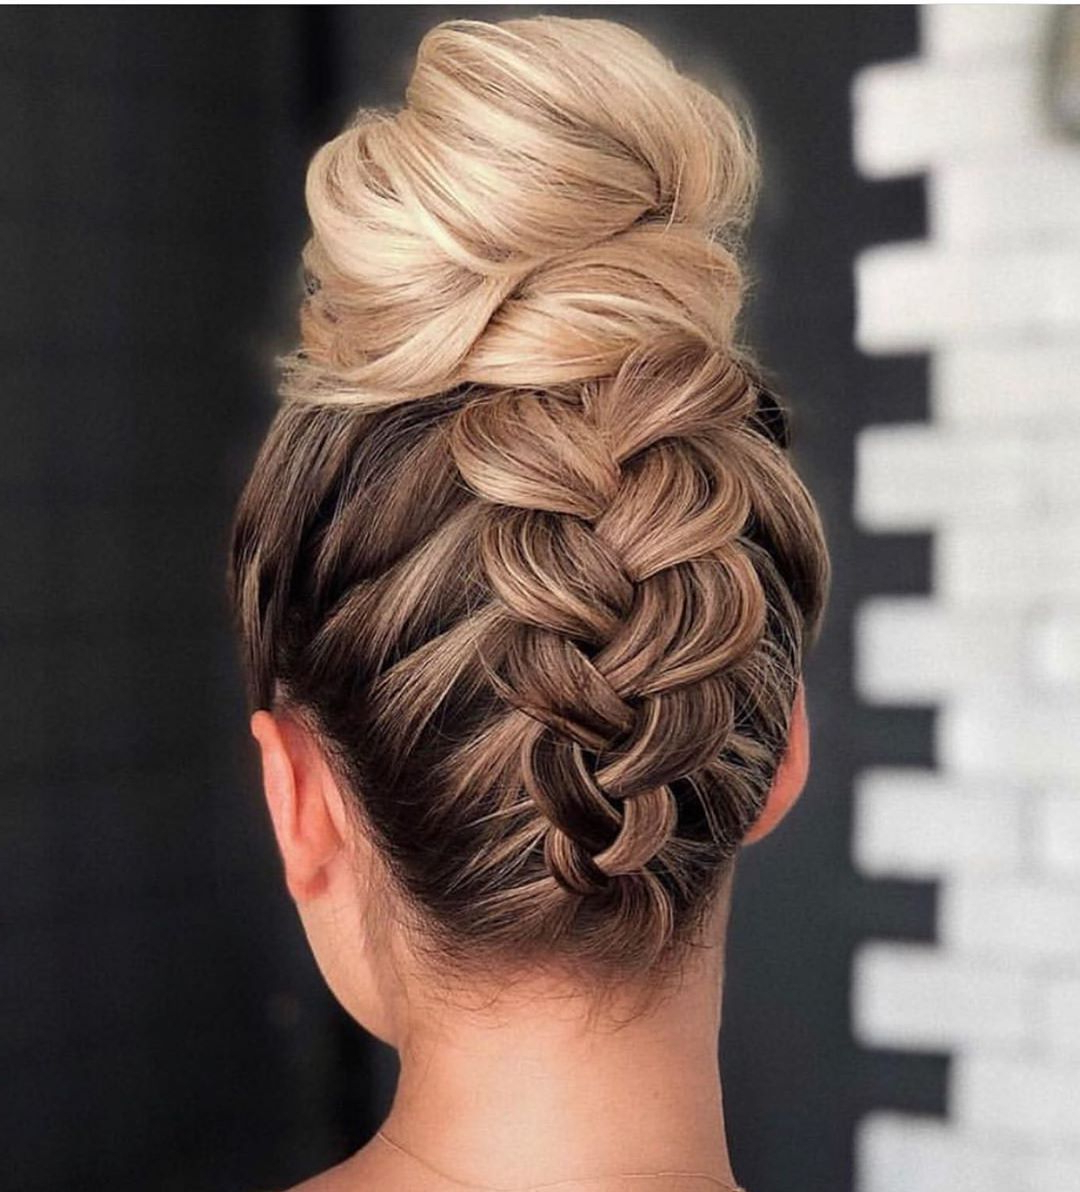 Current Modern Braided Top Knot Hairstyles Throughout 10 Beautiful Braided Updo Hairstyles For Women – Modern Updo (View 4 of 20)